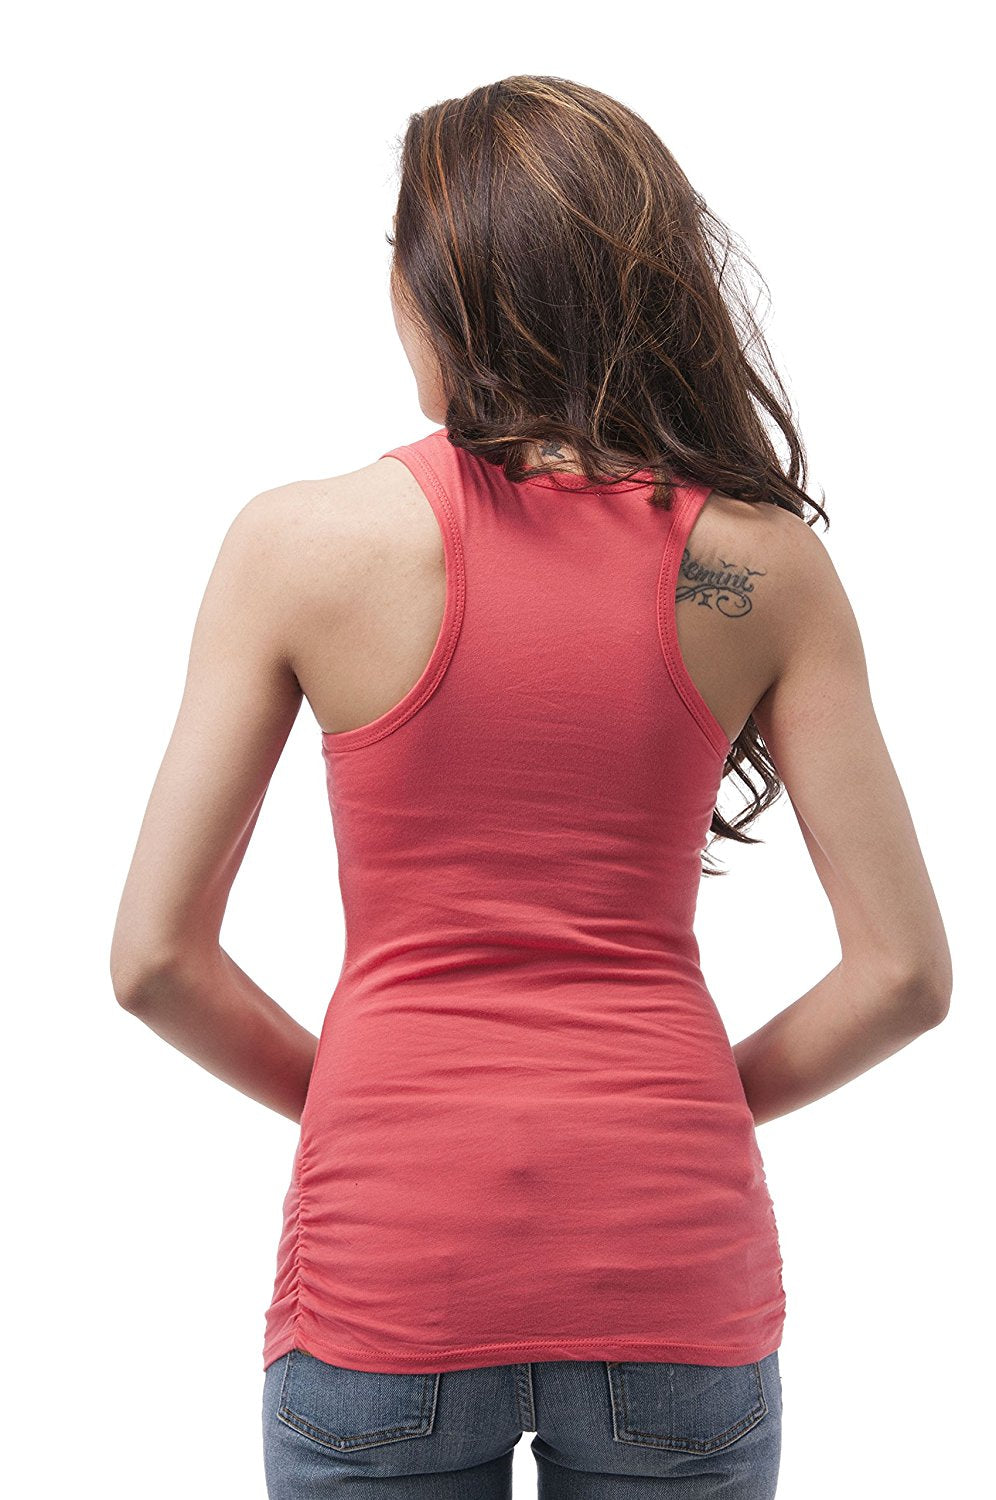 Hollywood Star Fashion Sleeveless Racer Back Tank Top